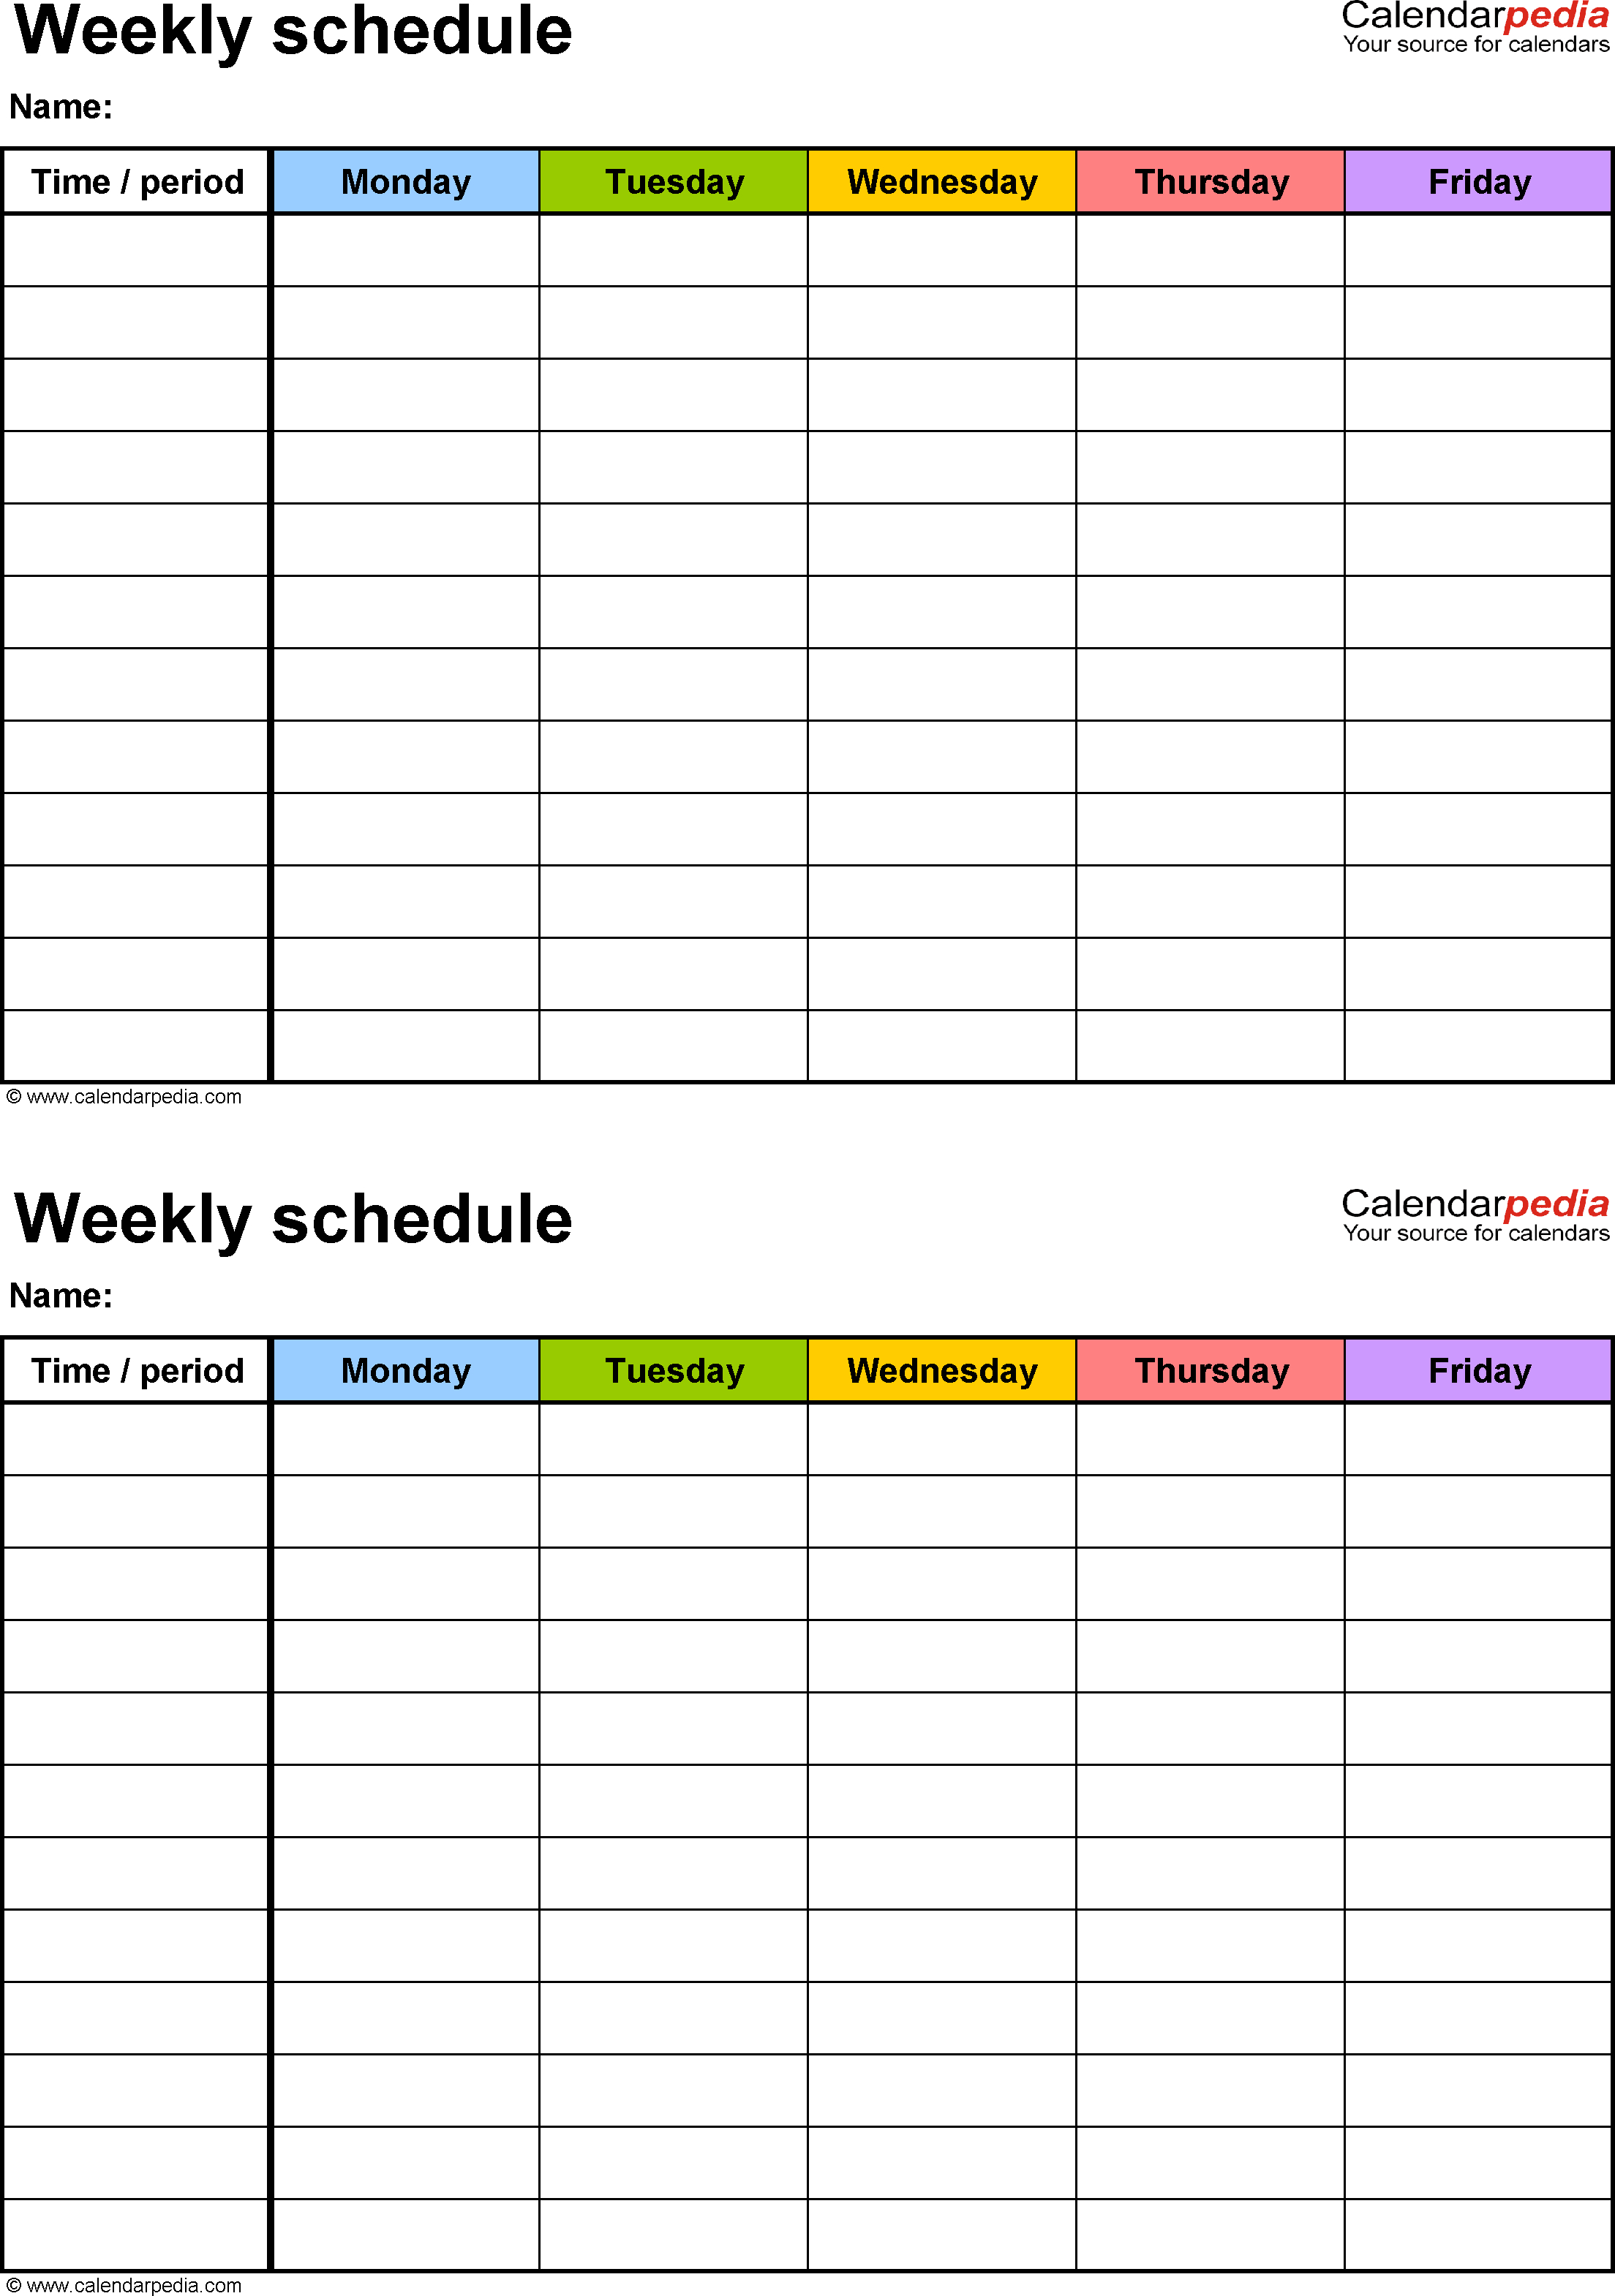 Free Weekly Schedule Templates For Word - 18 Templates inside 7 Day Calendar Template Fillable